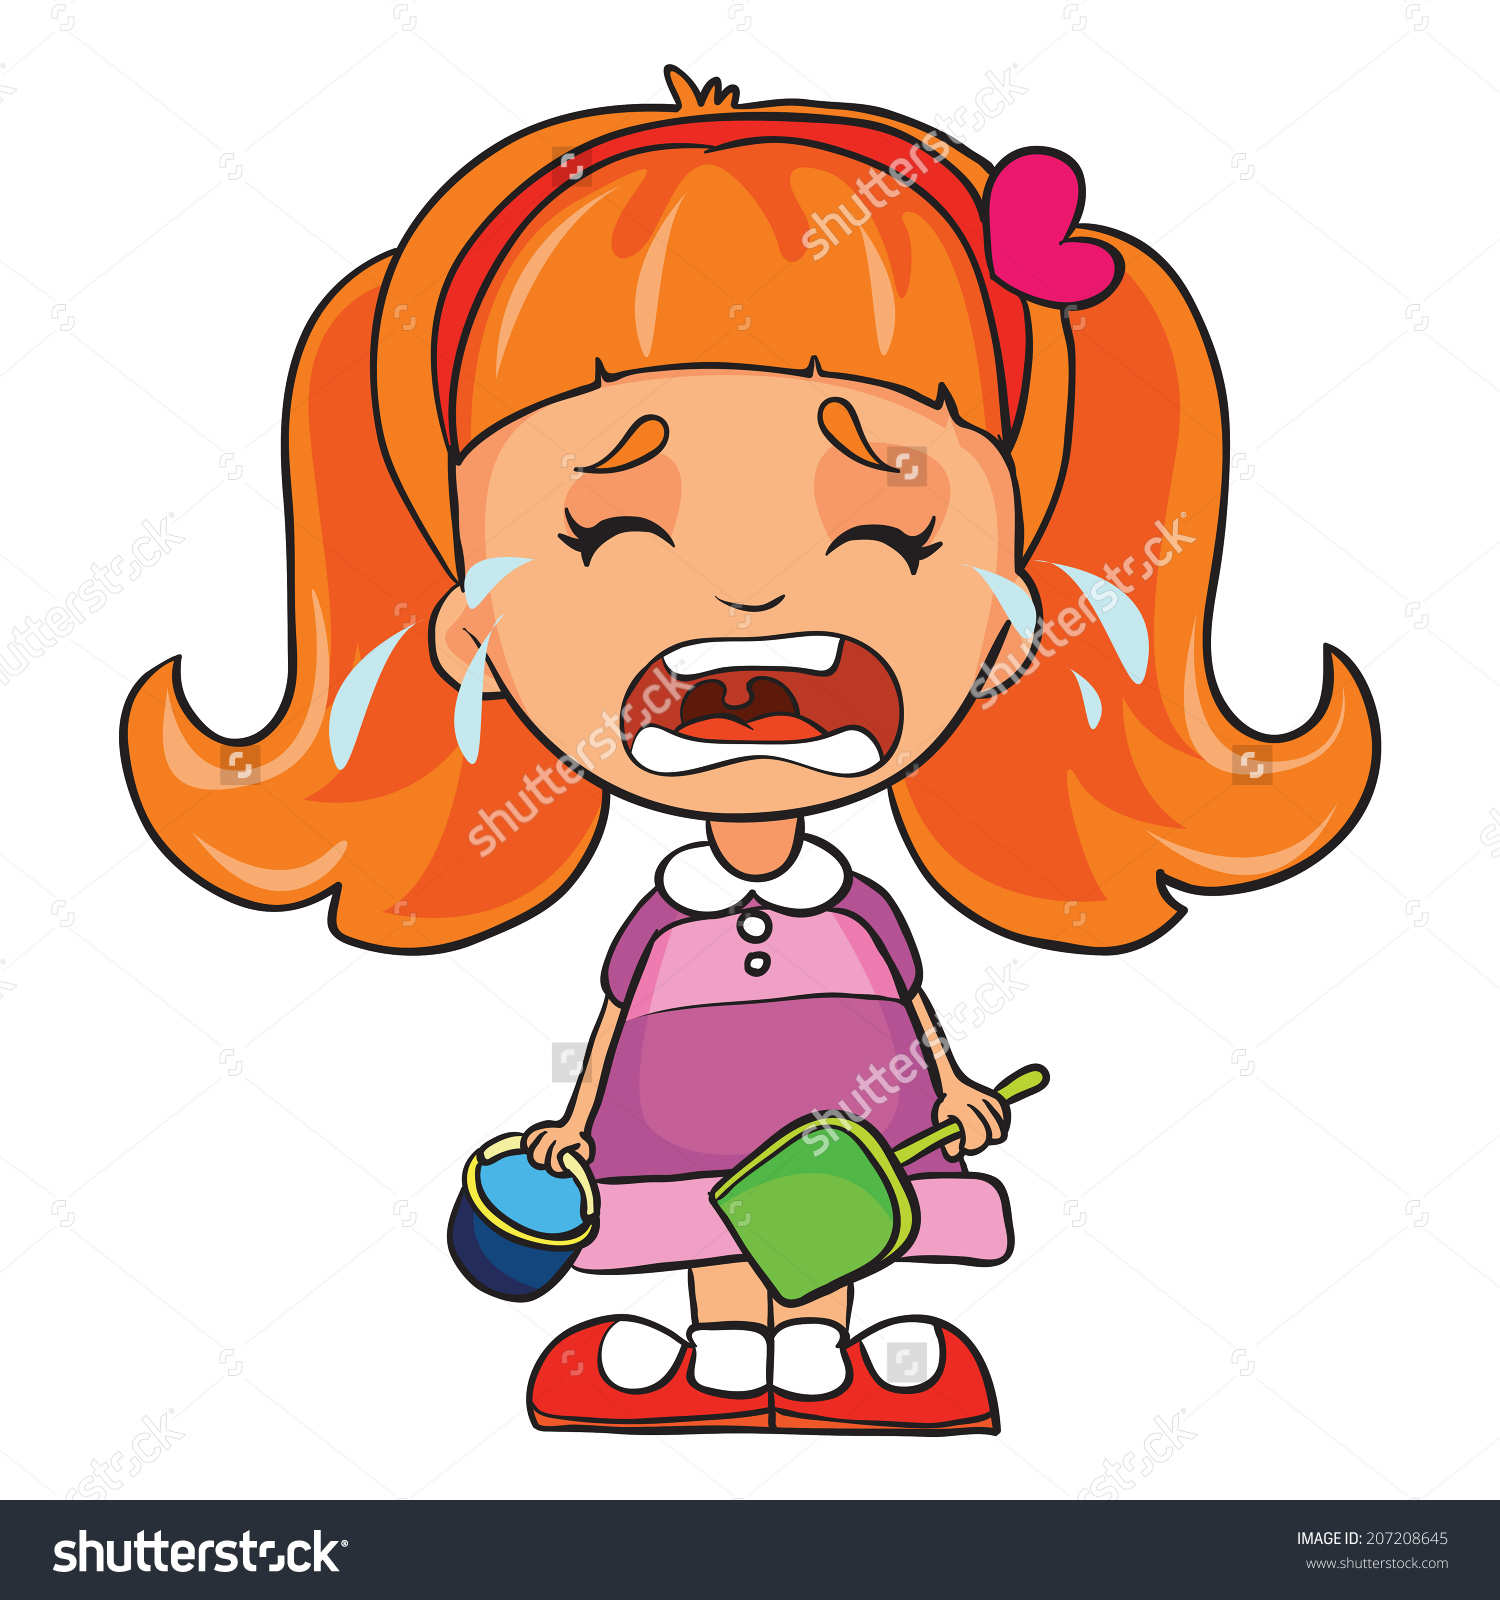 Child crying free download. Cry clipart cried